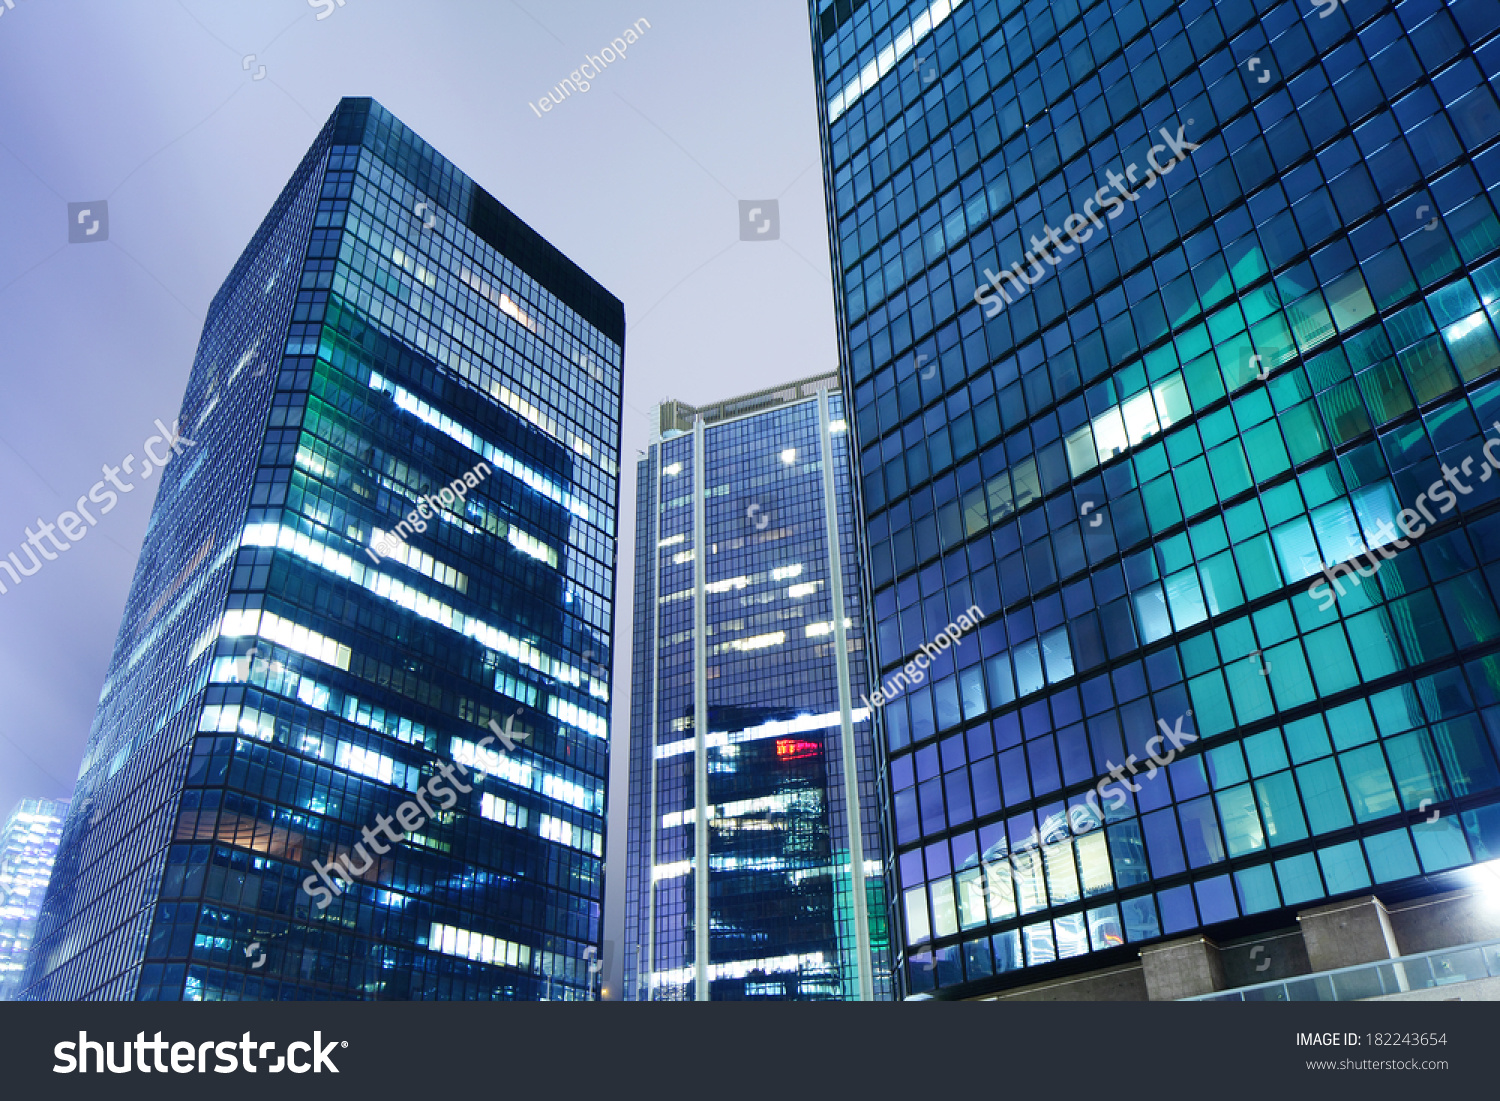 Office building at outdoor stock photo 182243654 for Outdoor office building